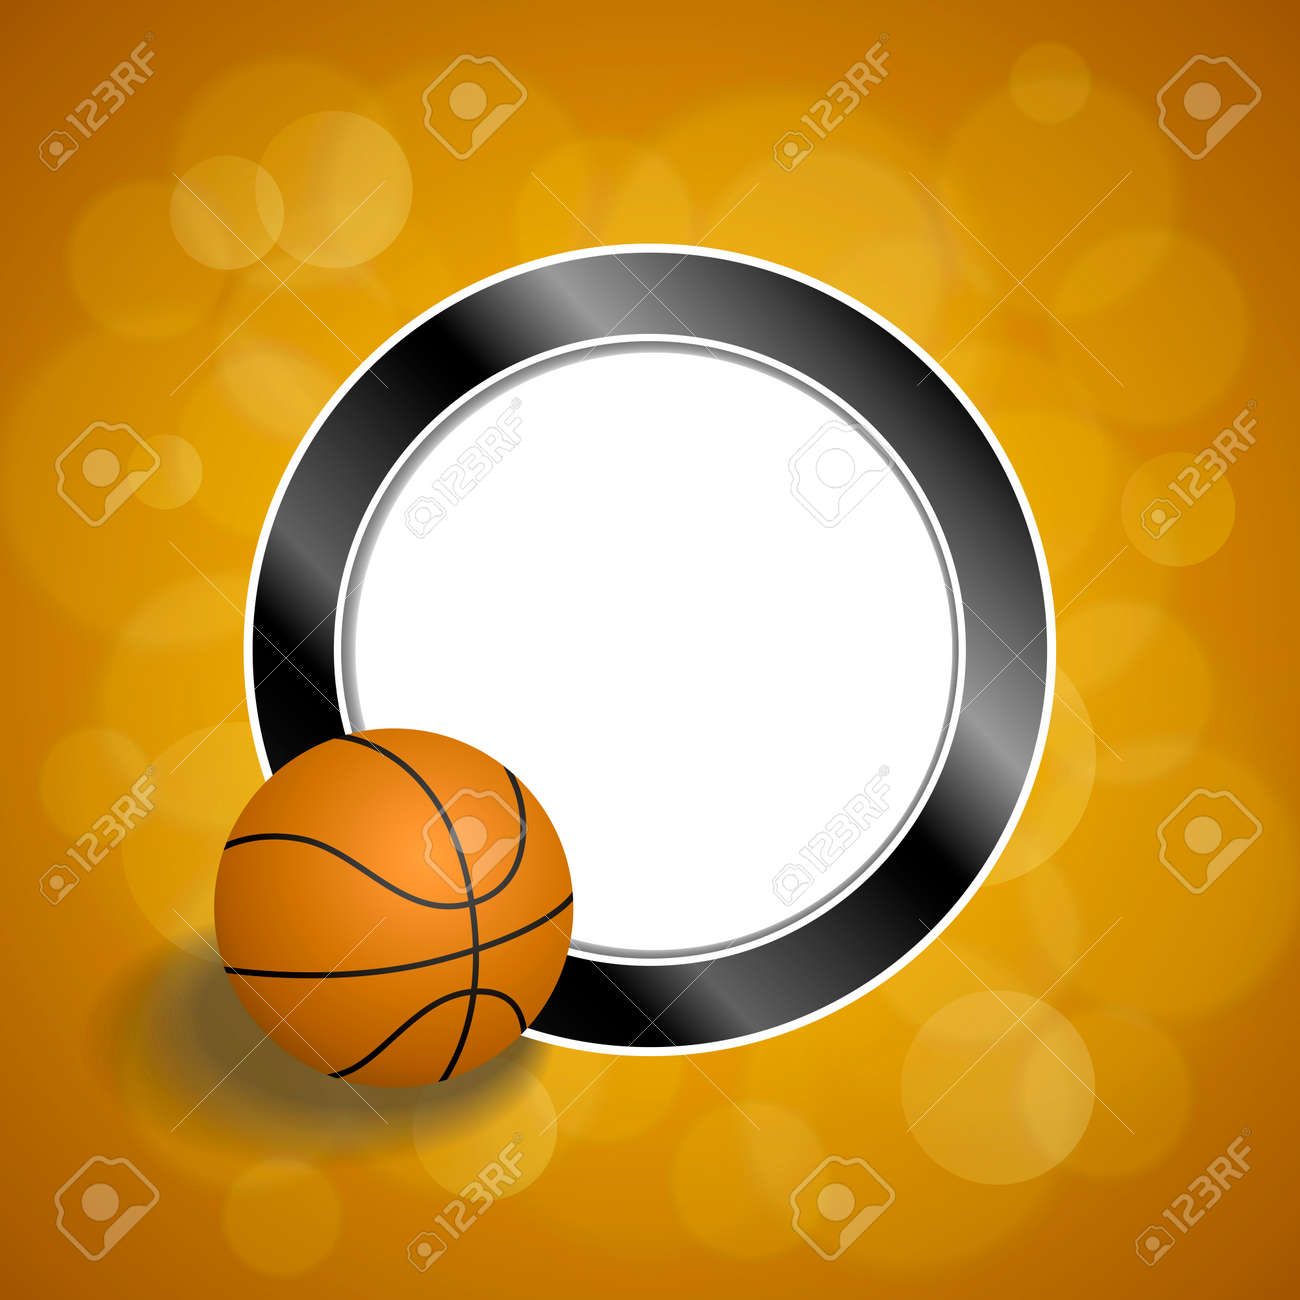 Background Abstract Orange Black Basketball Ball Circle Frame ...